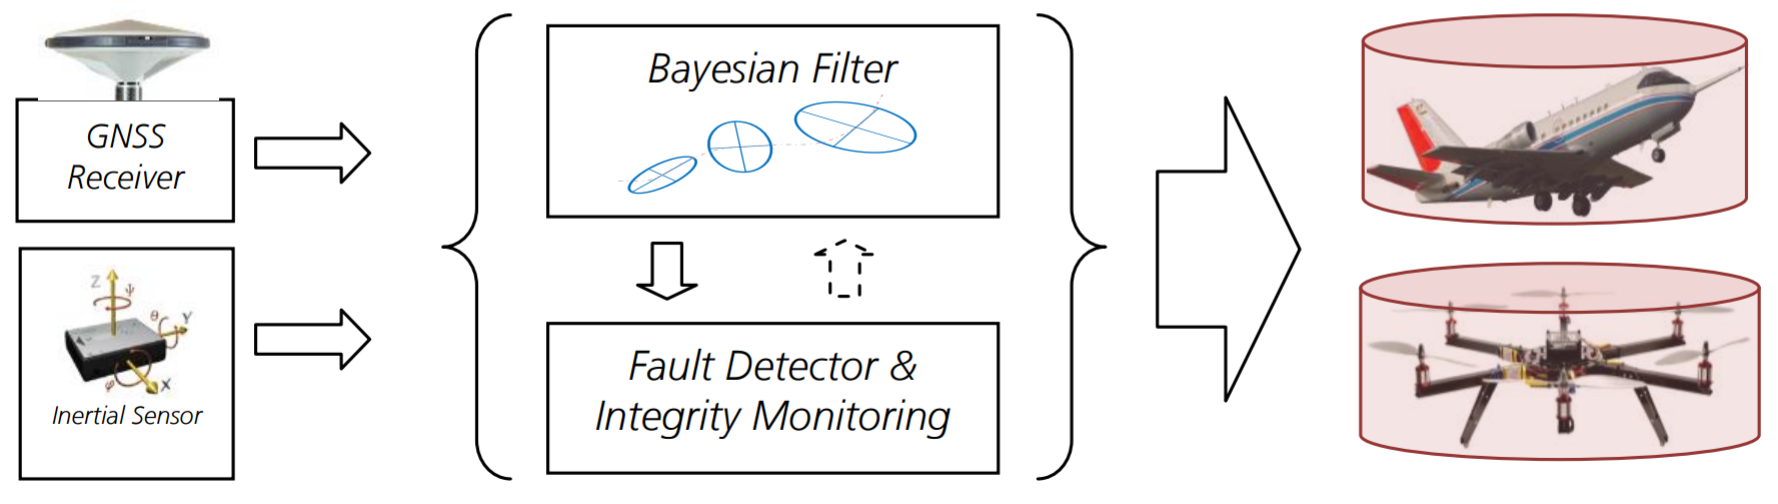 Autonomous_Integrity_Monitoring_in_GNSS_Systems